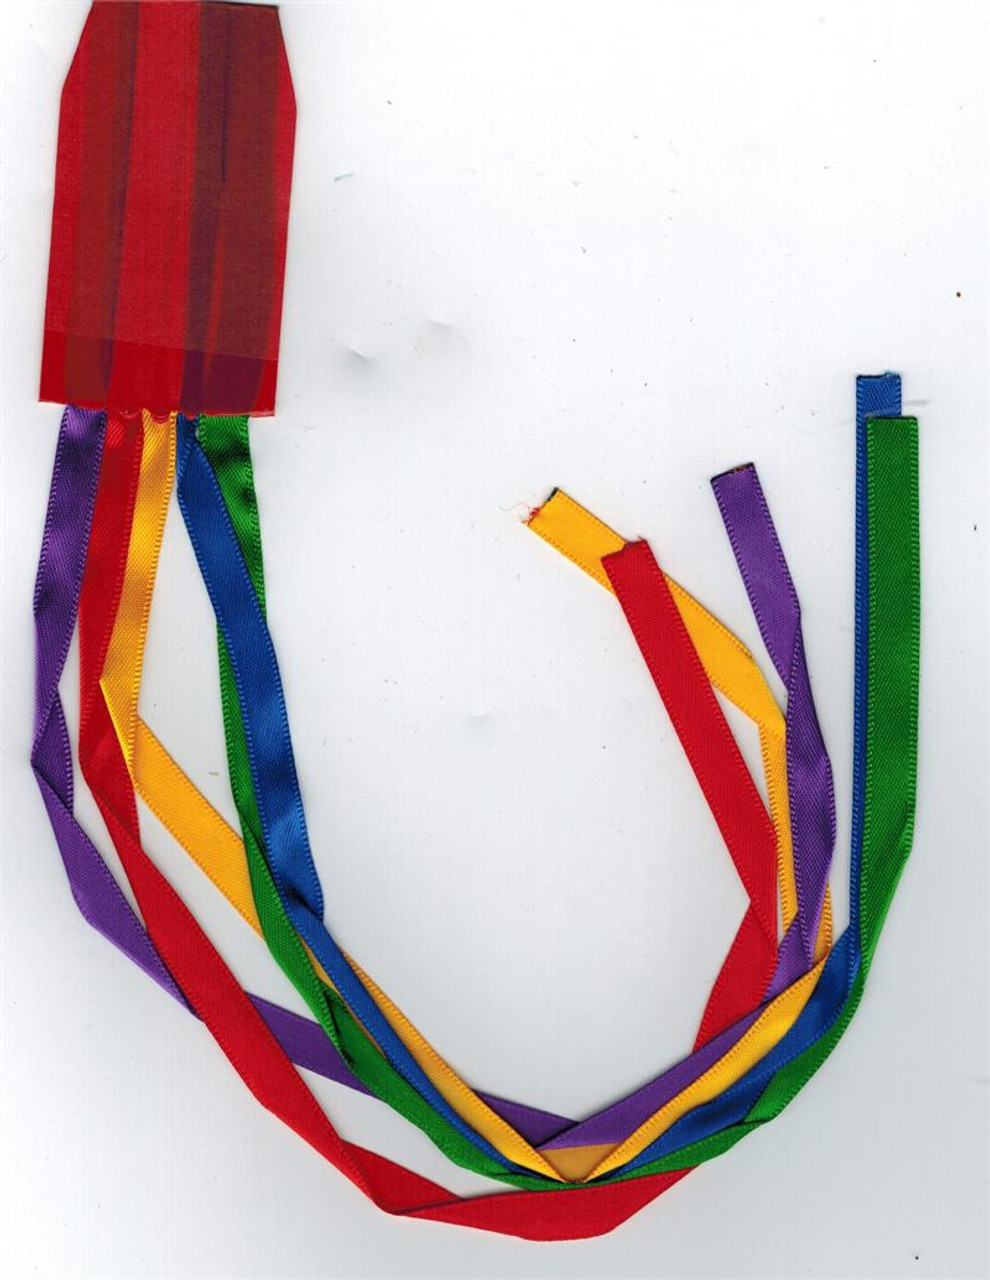 Liturgy of the Hours Breviary Ribbon